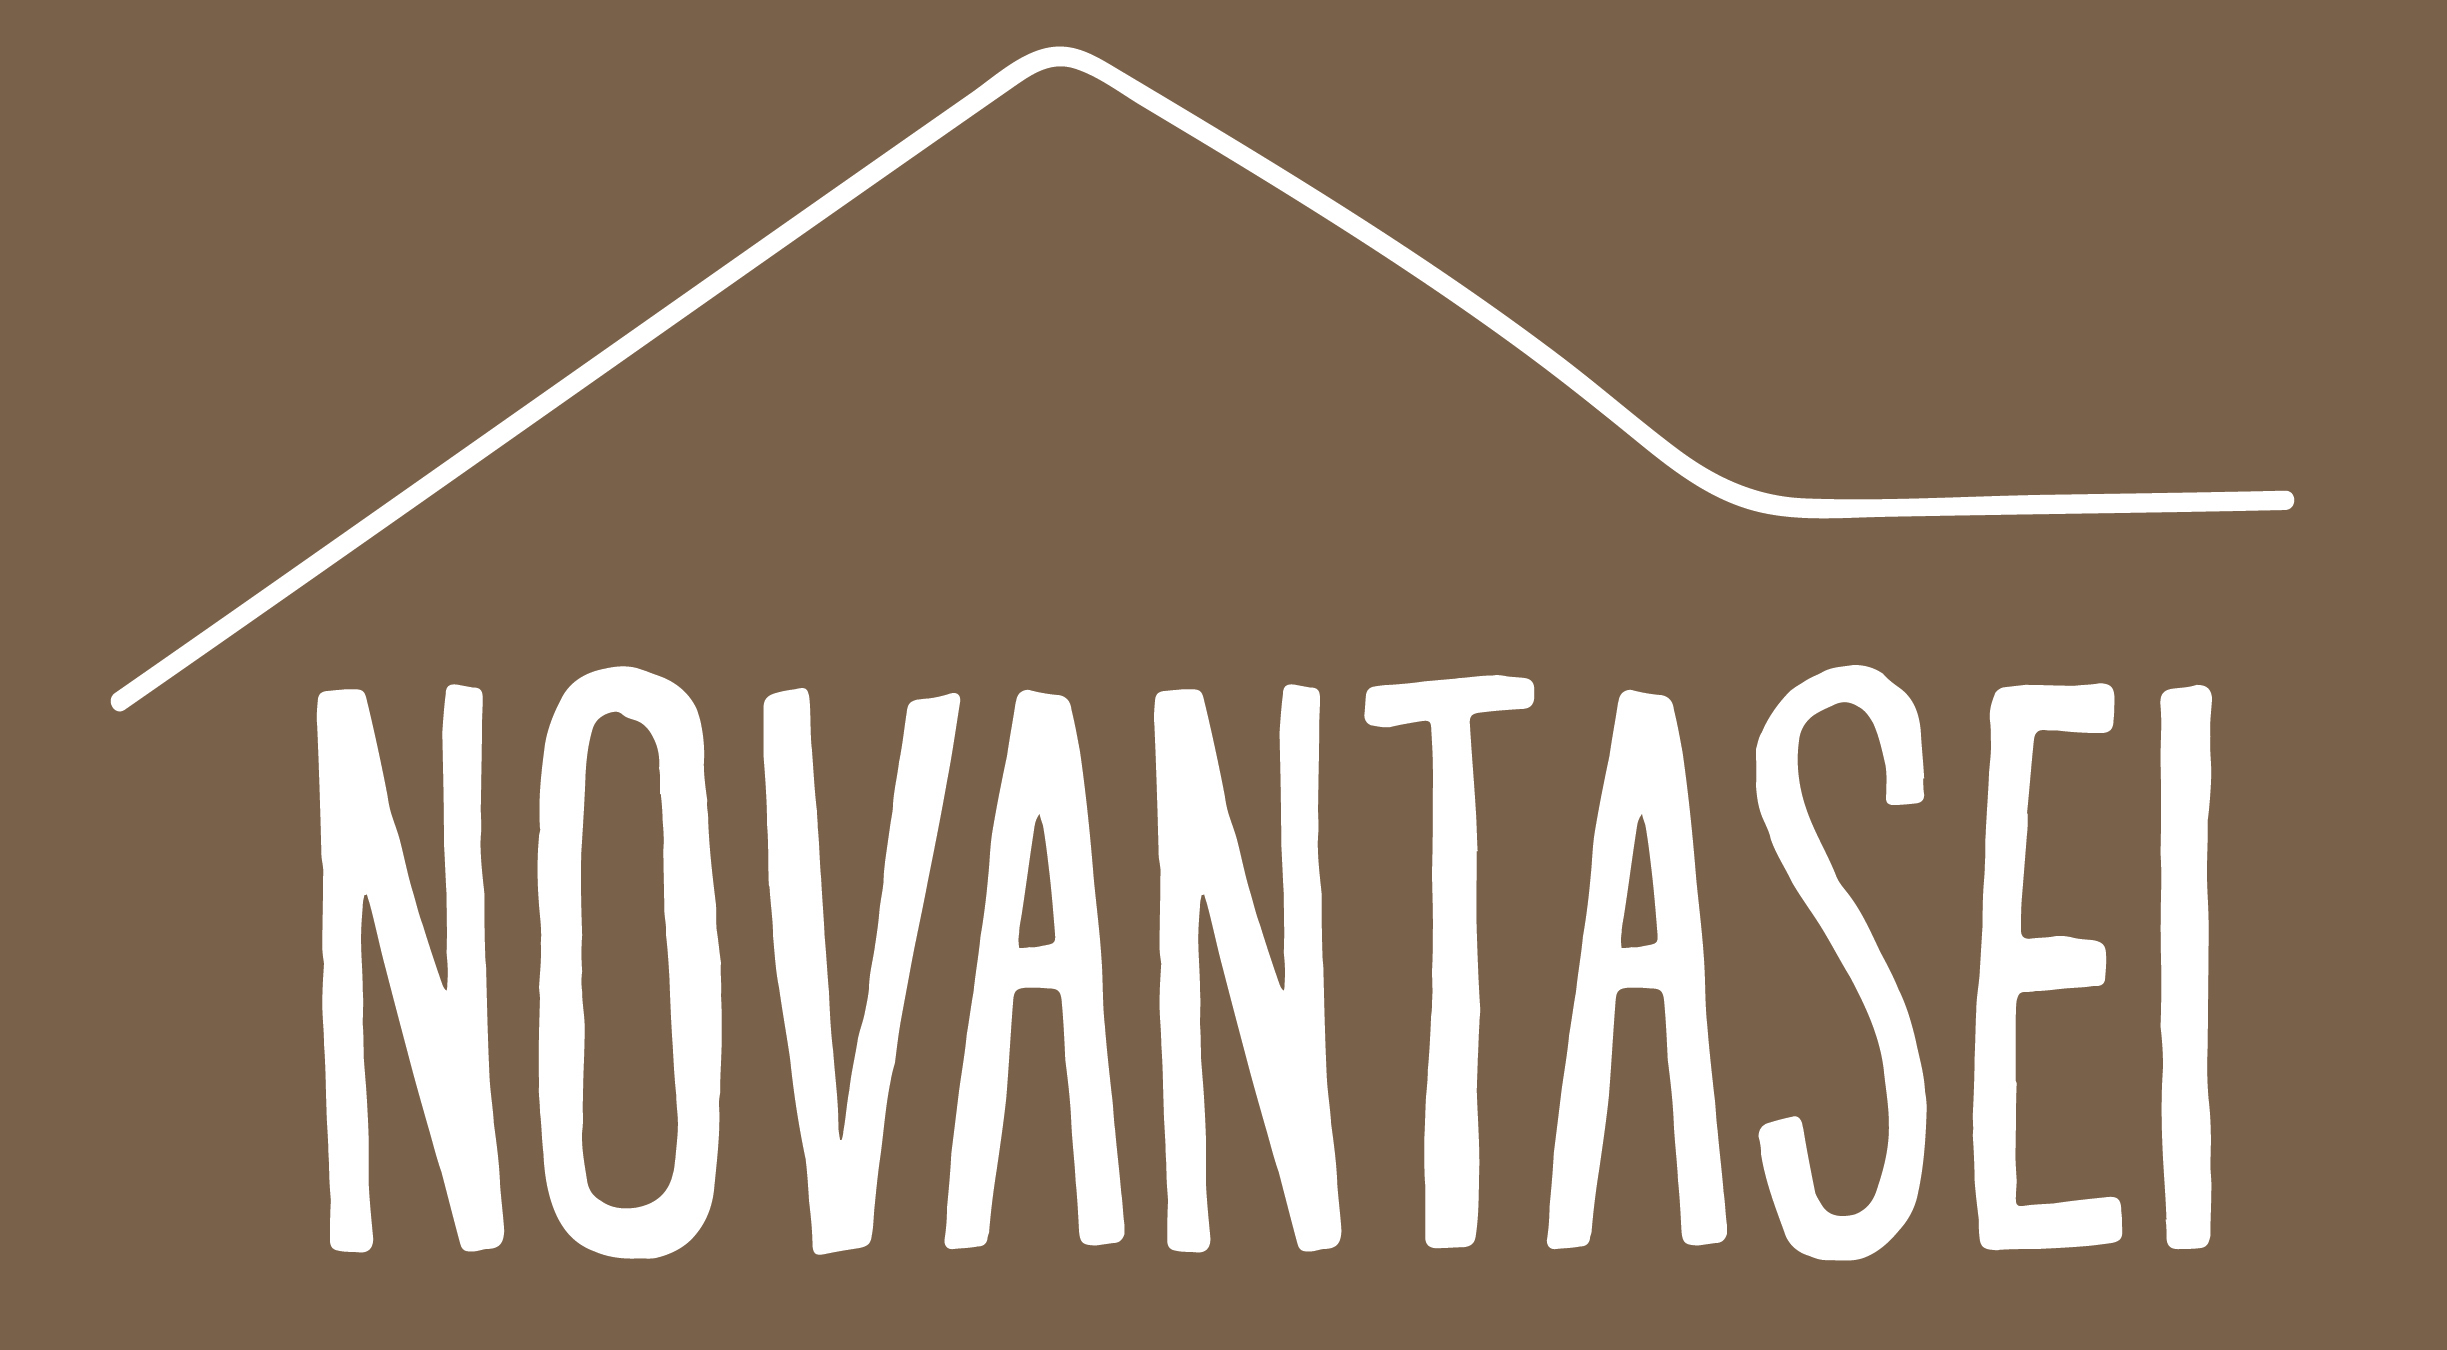 Novantasei